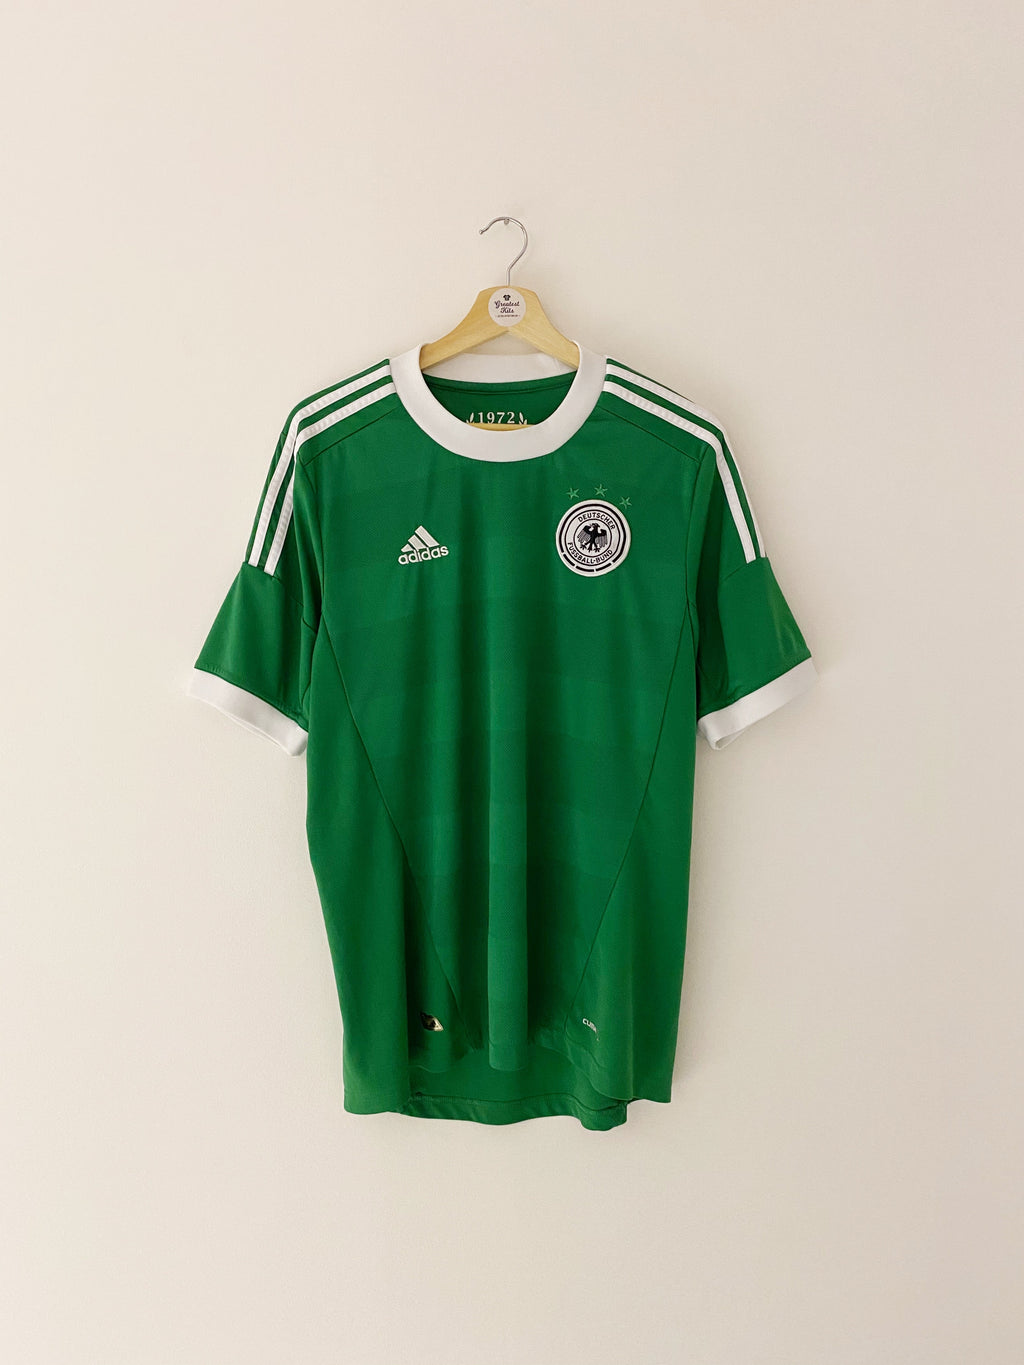 2012/13 Germany Away Shirt (L) 8.5/10